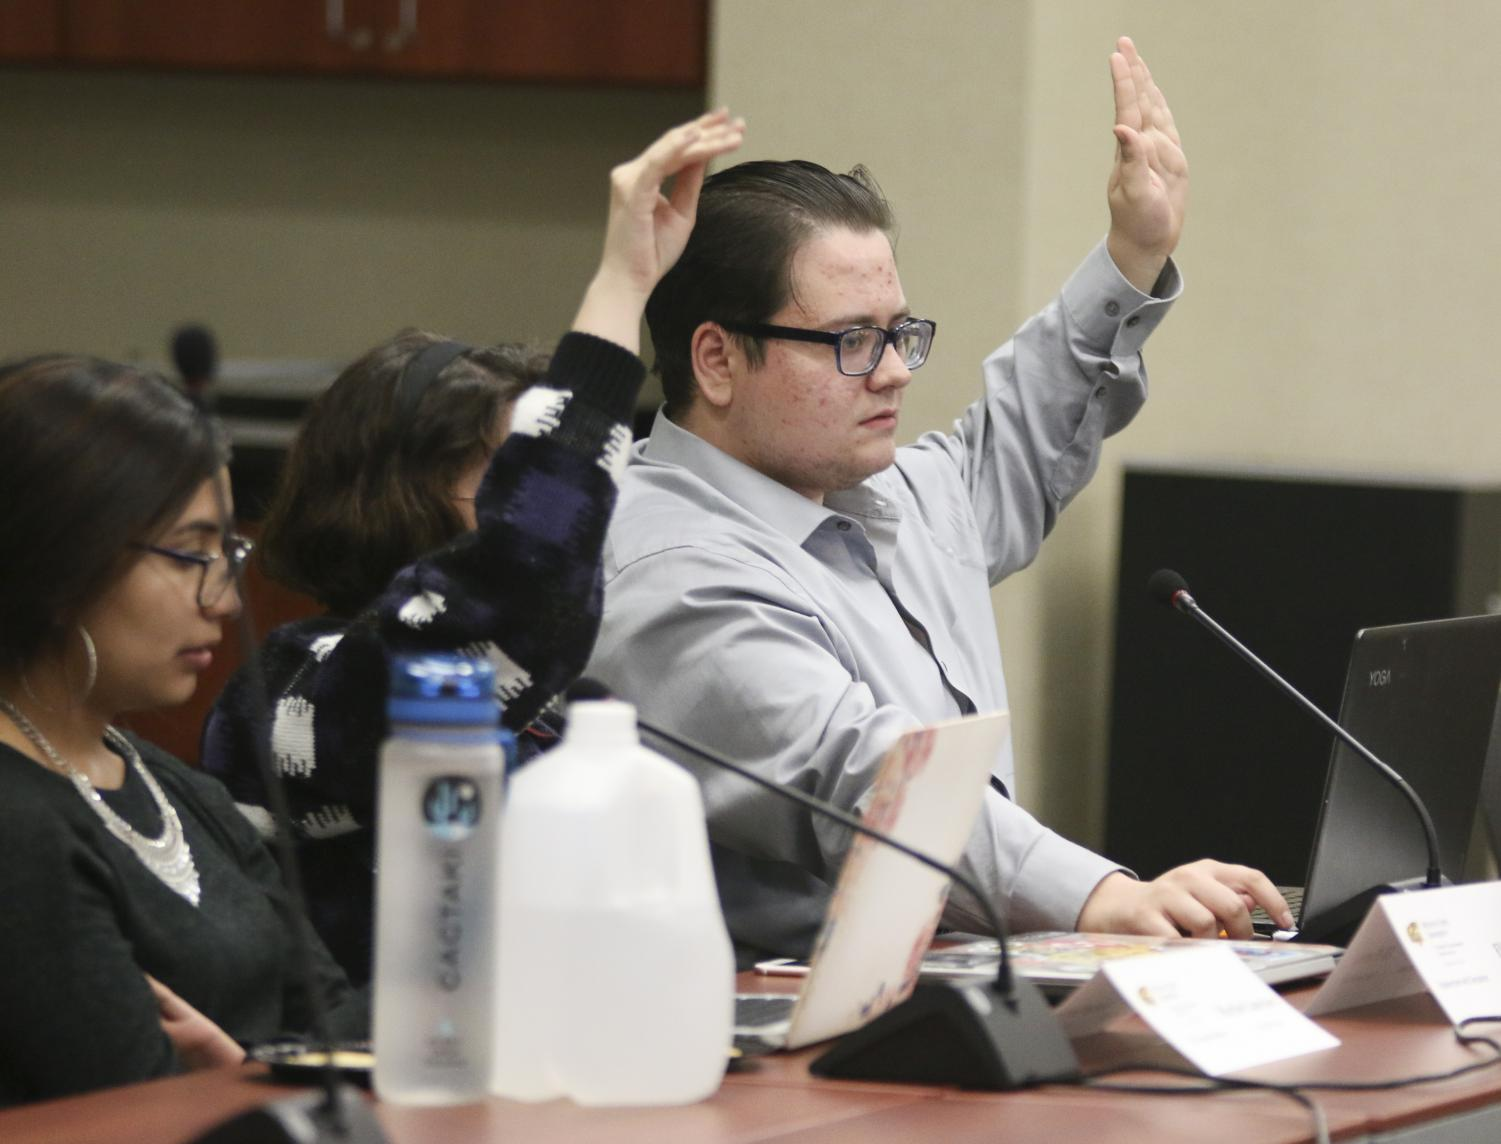 At-Large Sen. Grant Day raises his hand to ask a question during Student Government Association's Nov. 20 meeting, where senators discussed a bill to make changes to the annual student fees process. Day also represents the College of Liberal Arts and Sciences on this year's Student Fees Committee.